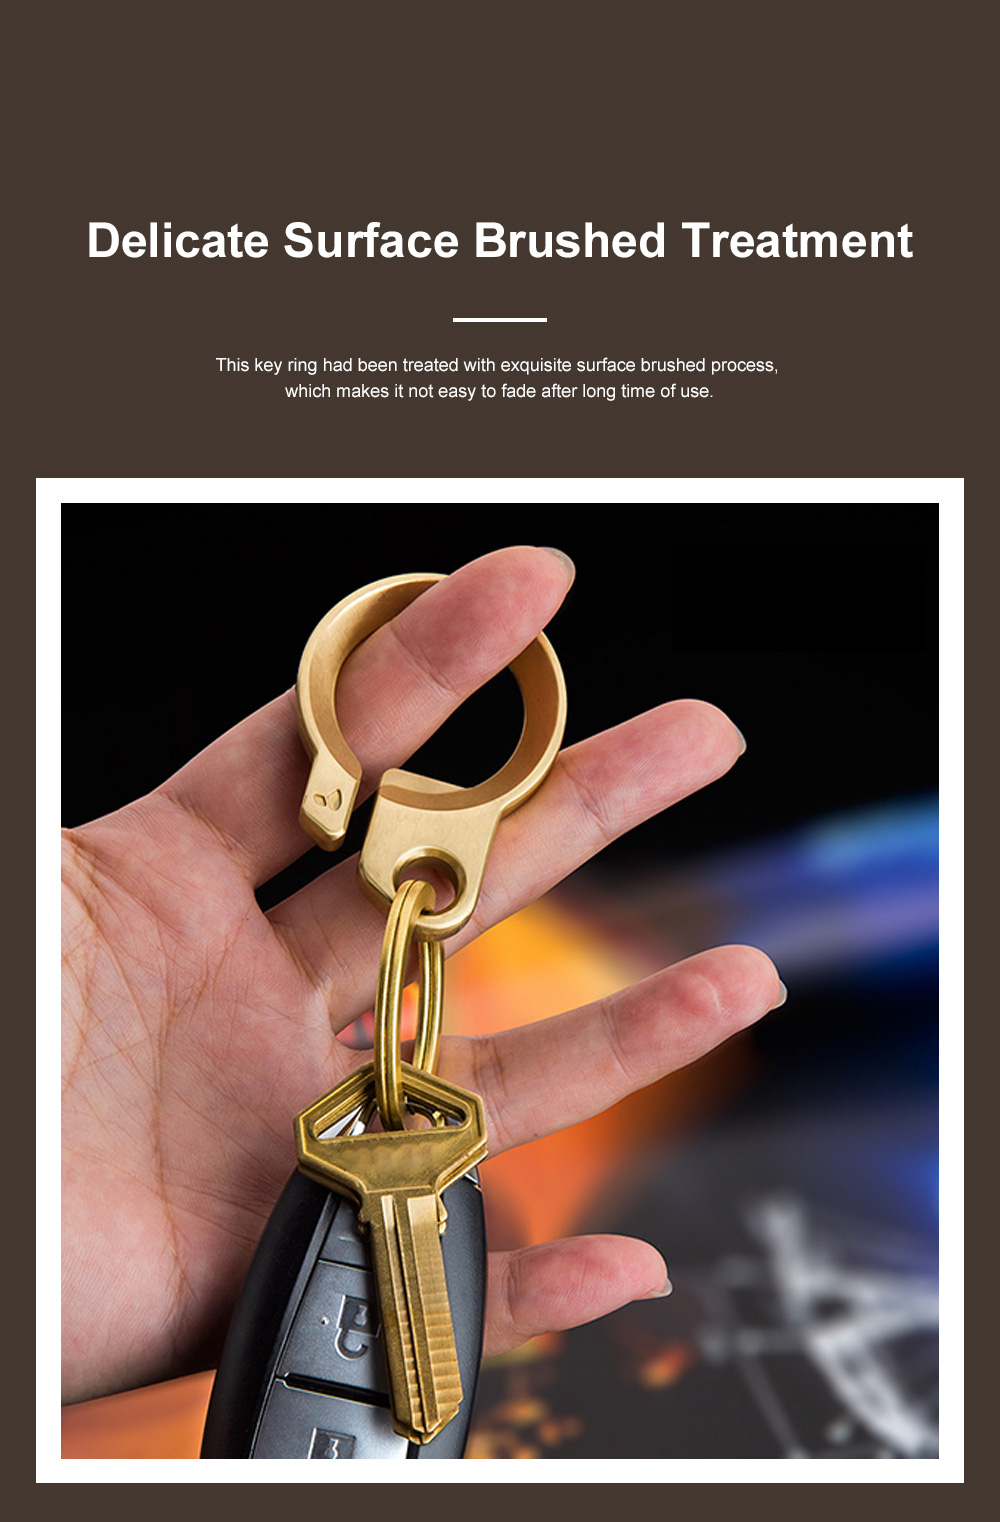 Creative Fancy Delicate Brass Copper Car Key Chain Ring Minimalist Atmosphere Convenient Functional Bottle Opener Waist Key Chain Creative Key Ring Opener 2